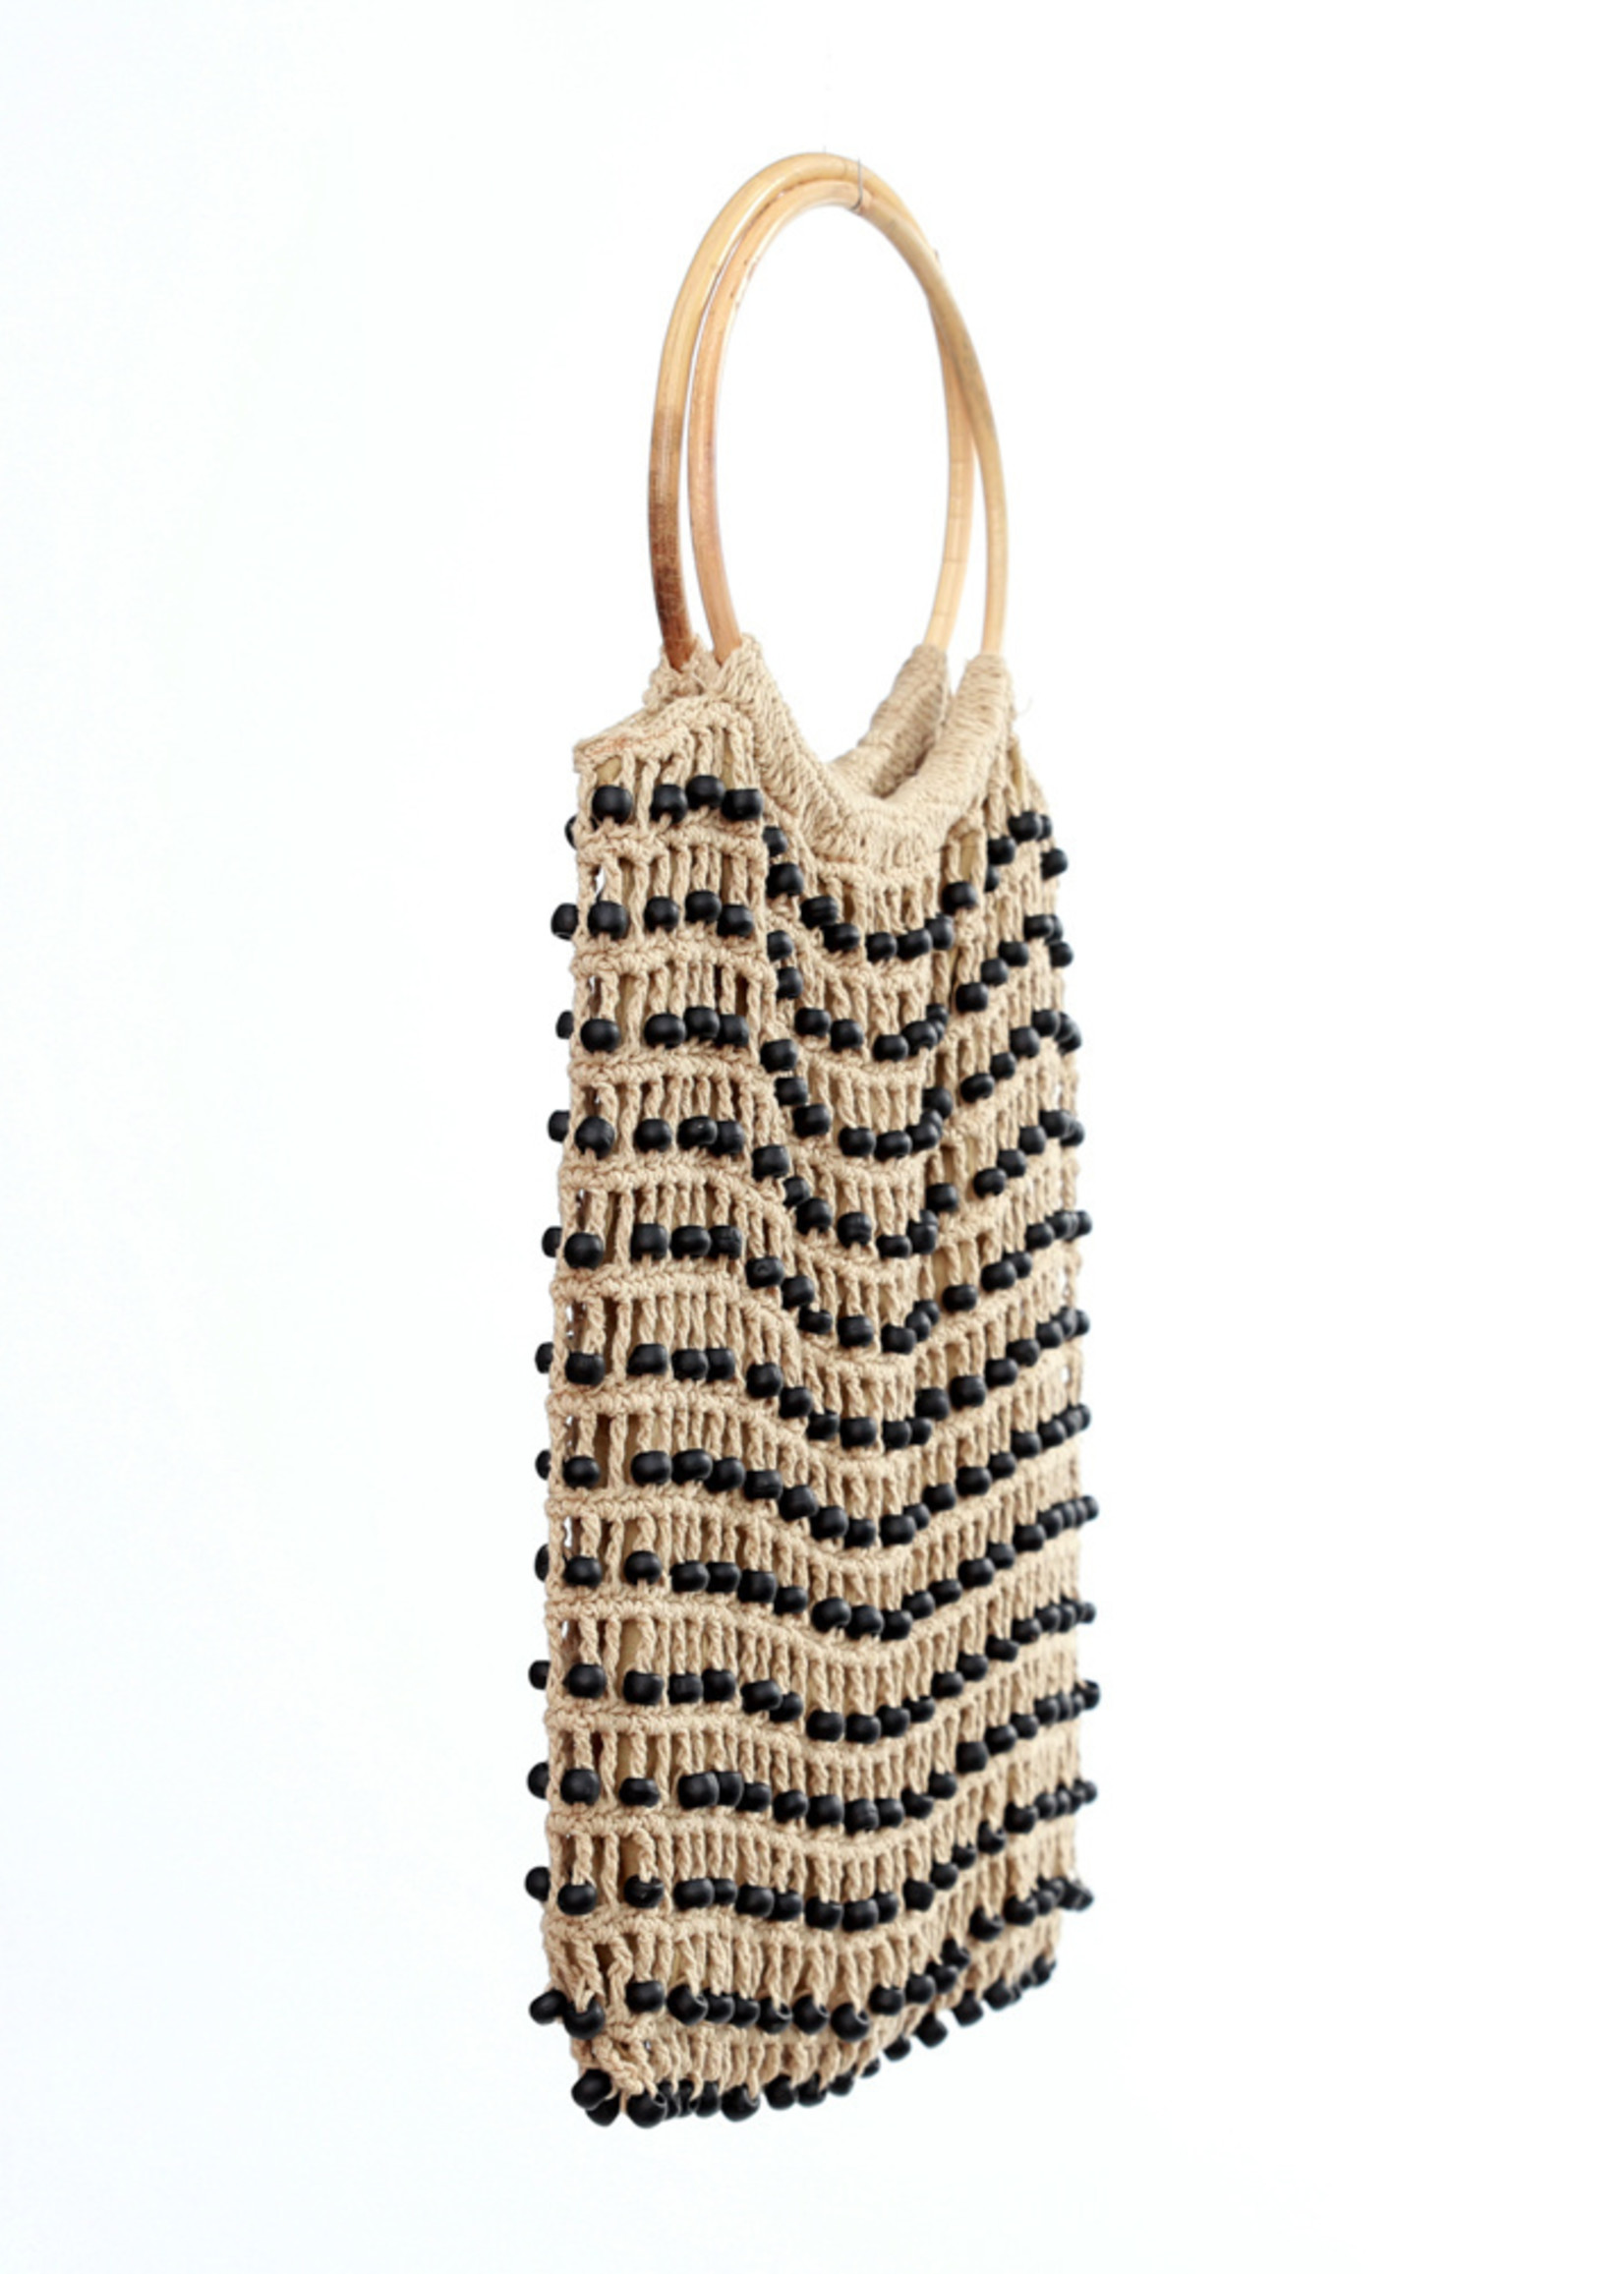 The Night in Night out Tote - Cream Black